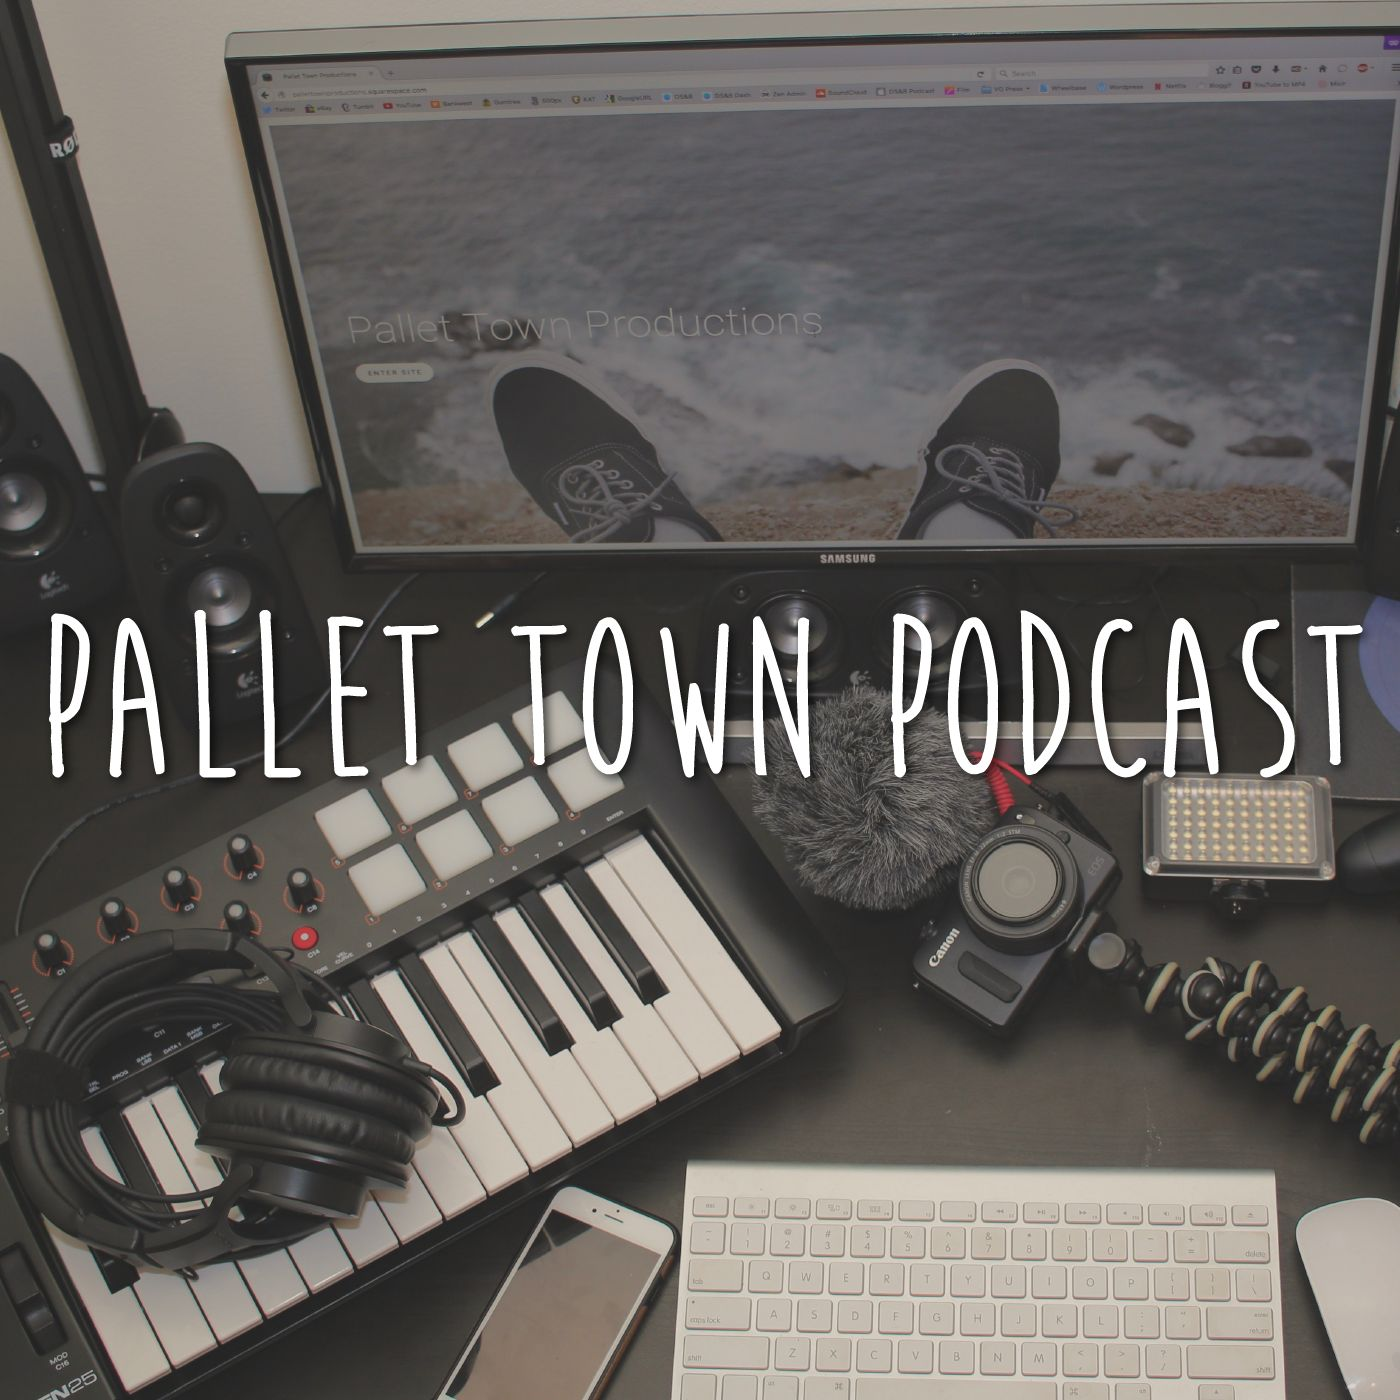 Pallet Town Podcast